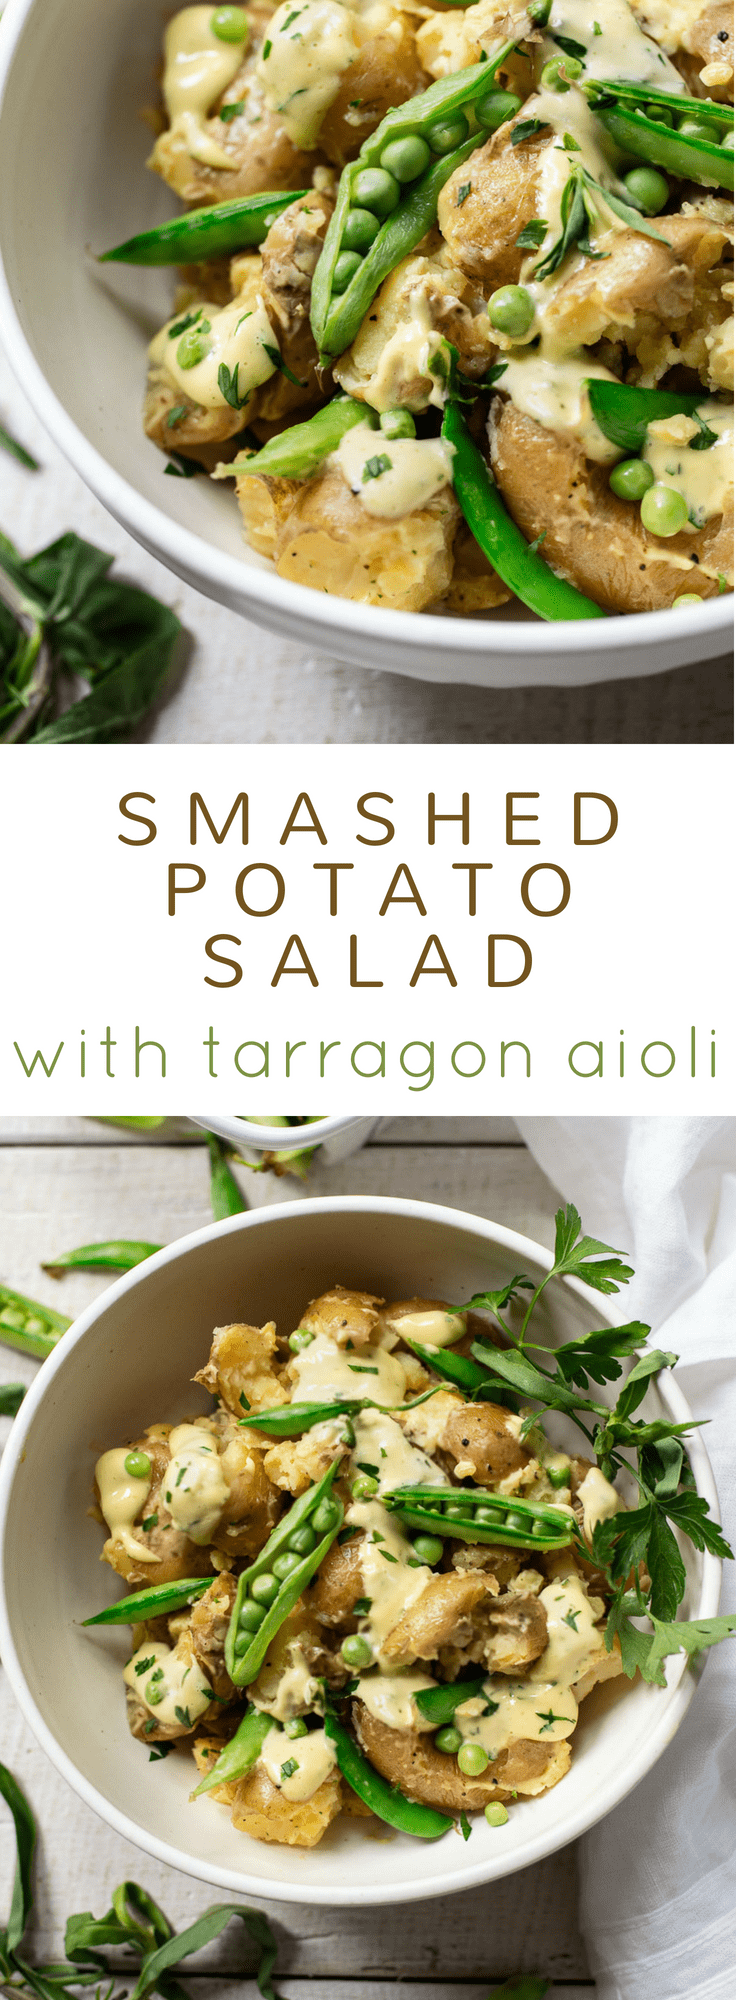 Smashed Potato Salad with Tarragon Aioli #easy #recipe #potluck #salad #healthy #best